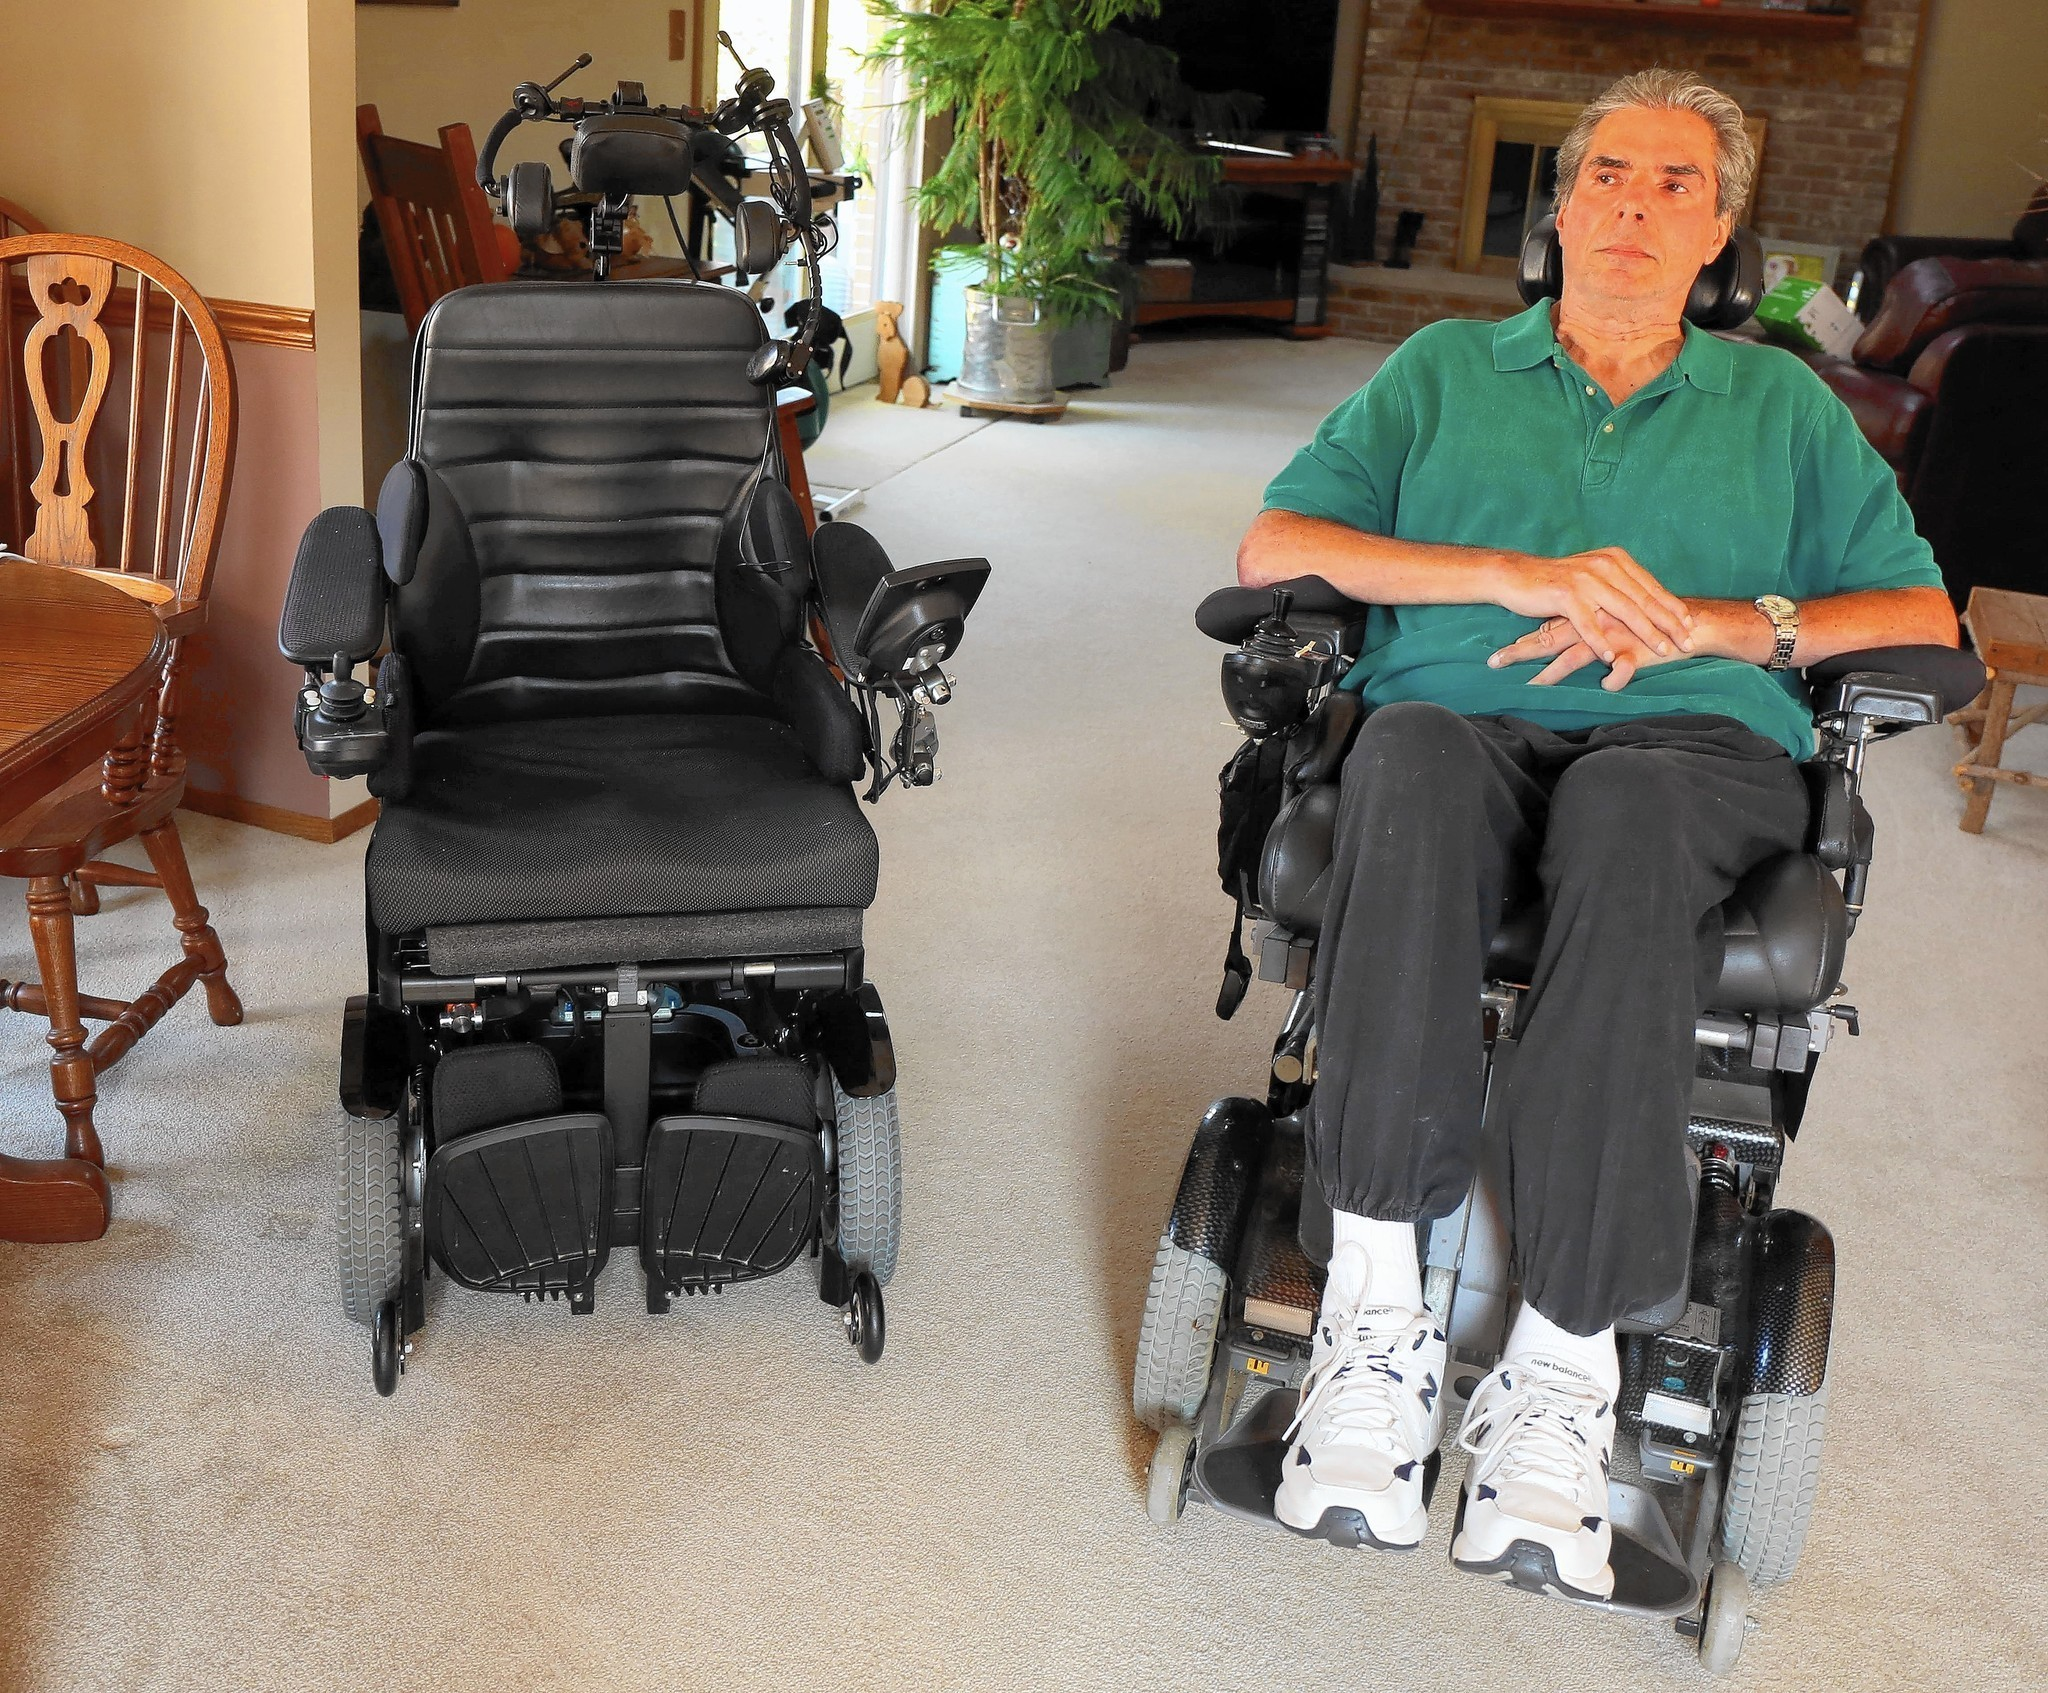 Wheelchair issues frustrate user  Chicago Tribune